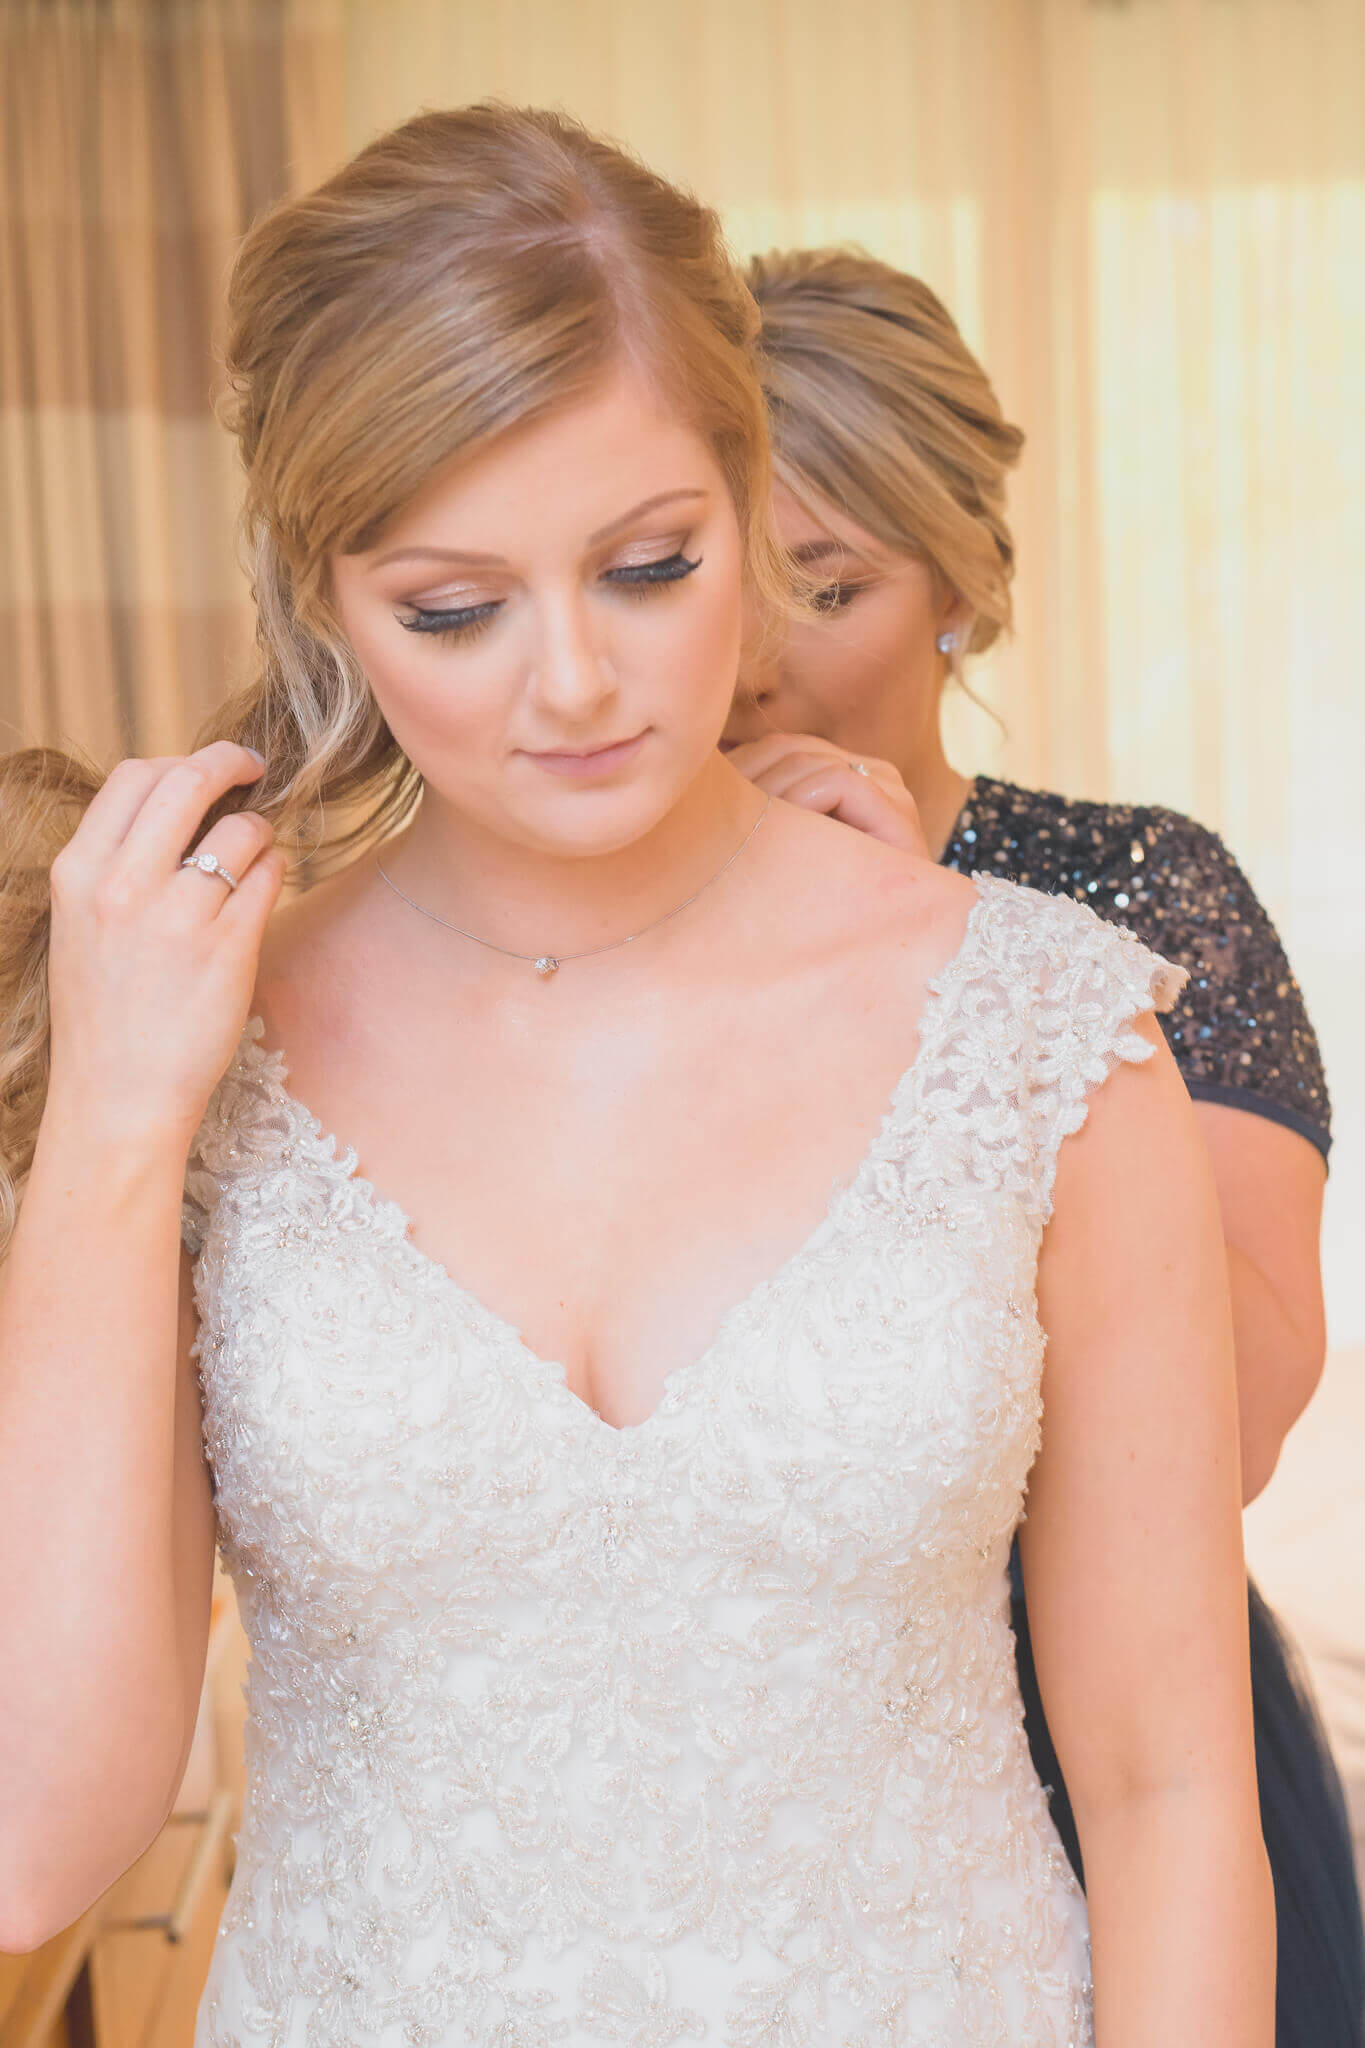 Bride getting ready photo by Ryan Hewett Photography